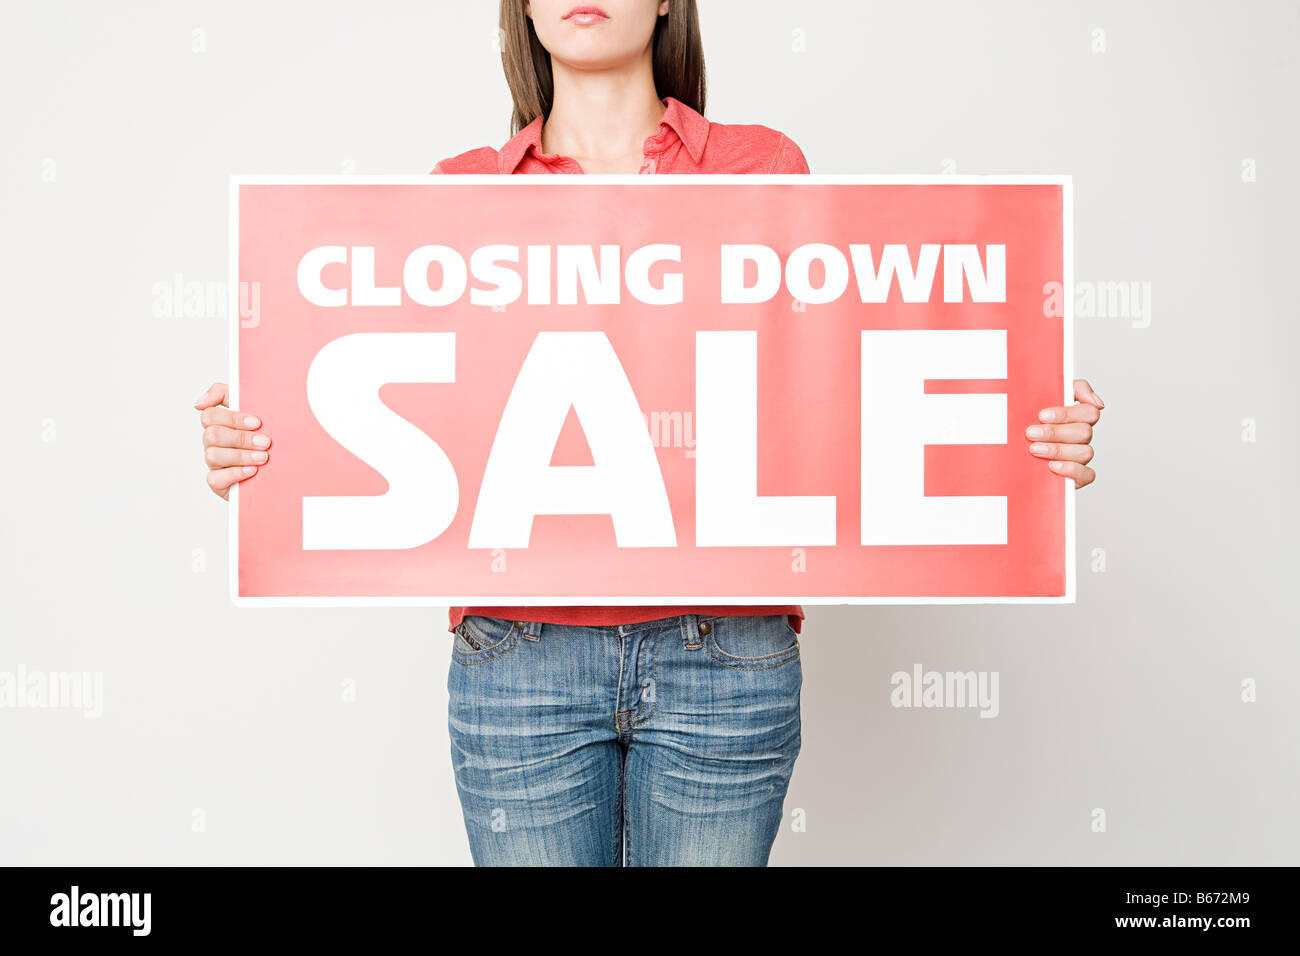 Woman holding a closing down sign - Stock Image